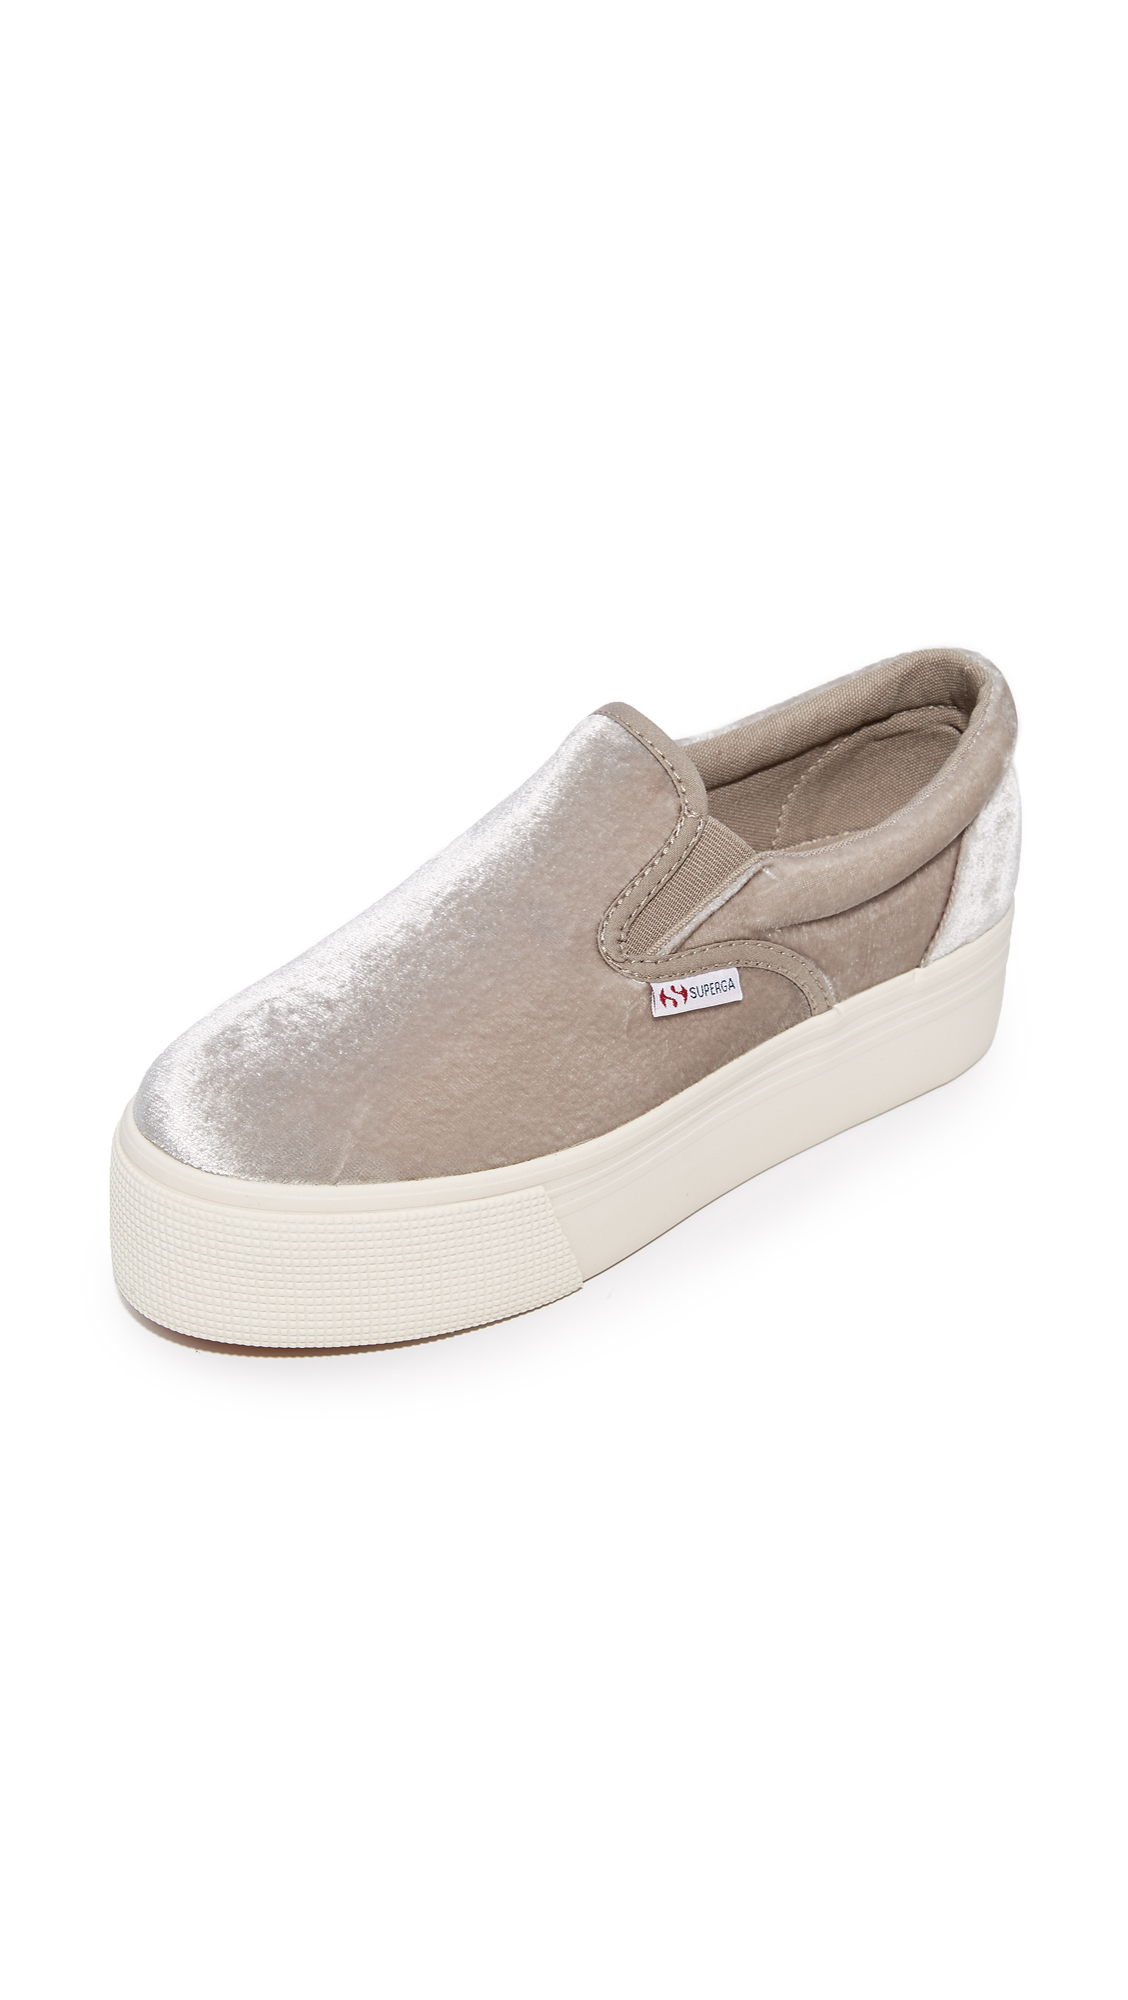 Superga 2314 Velvet Platform Slip On Sneakers - Light Grey